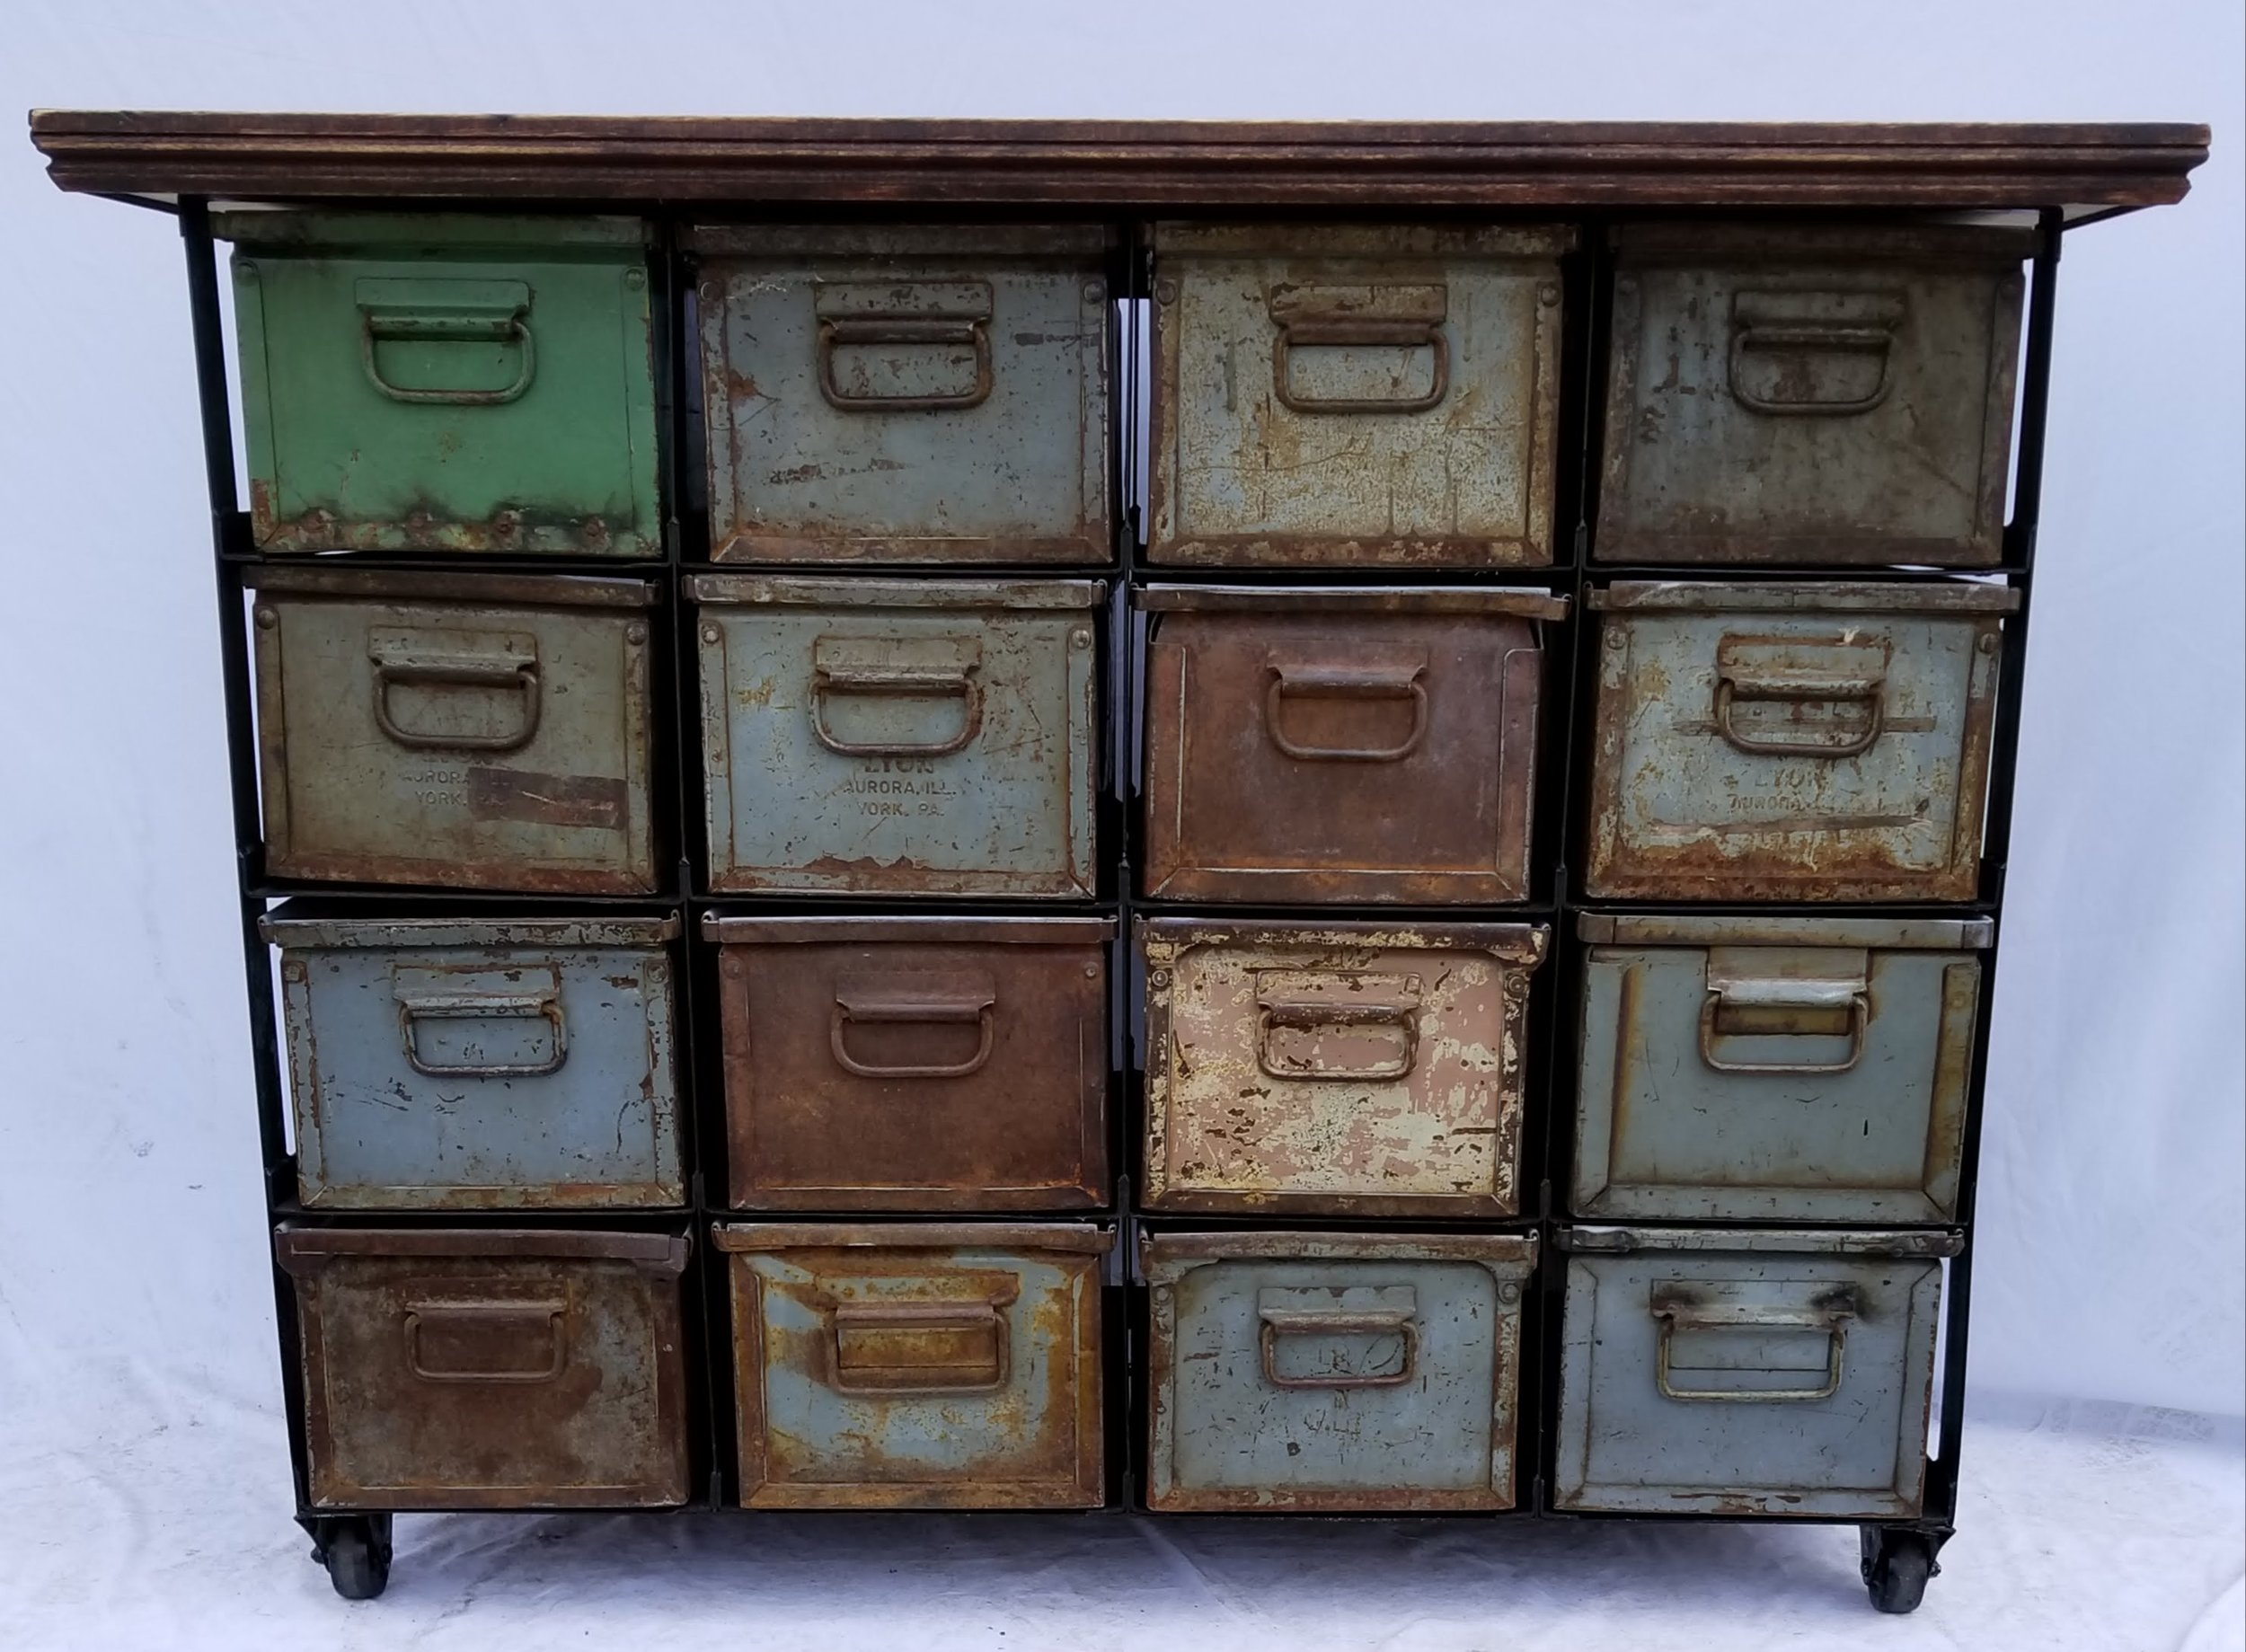 SOLD - Storage Drawer Buffet II